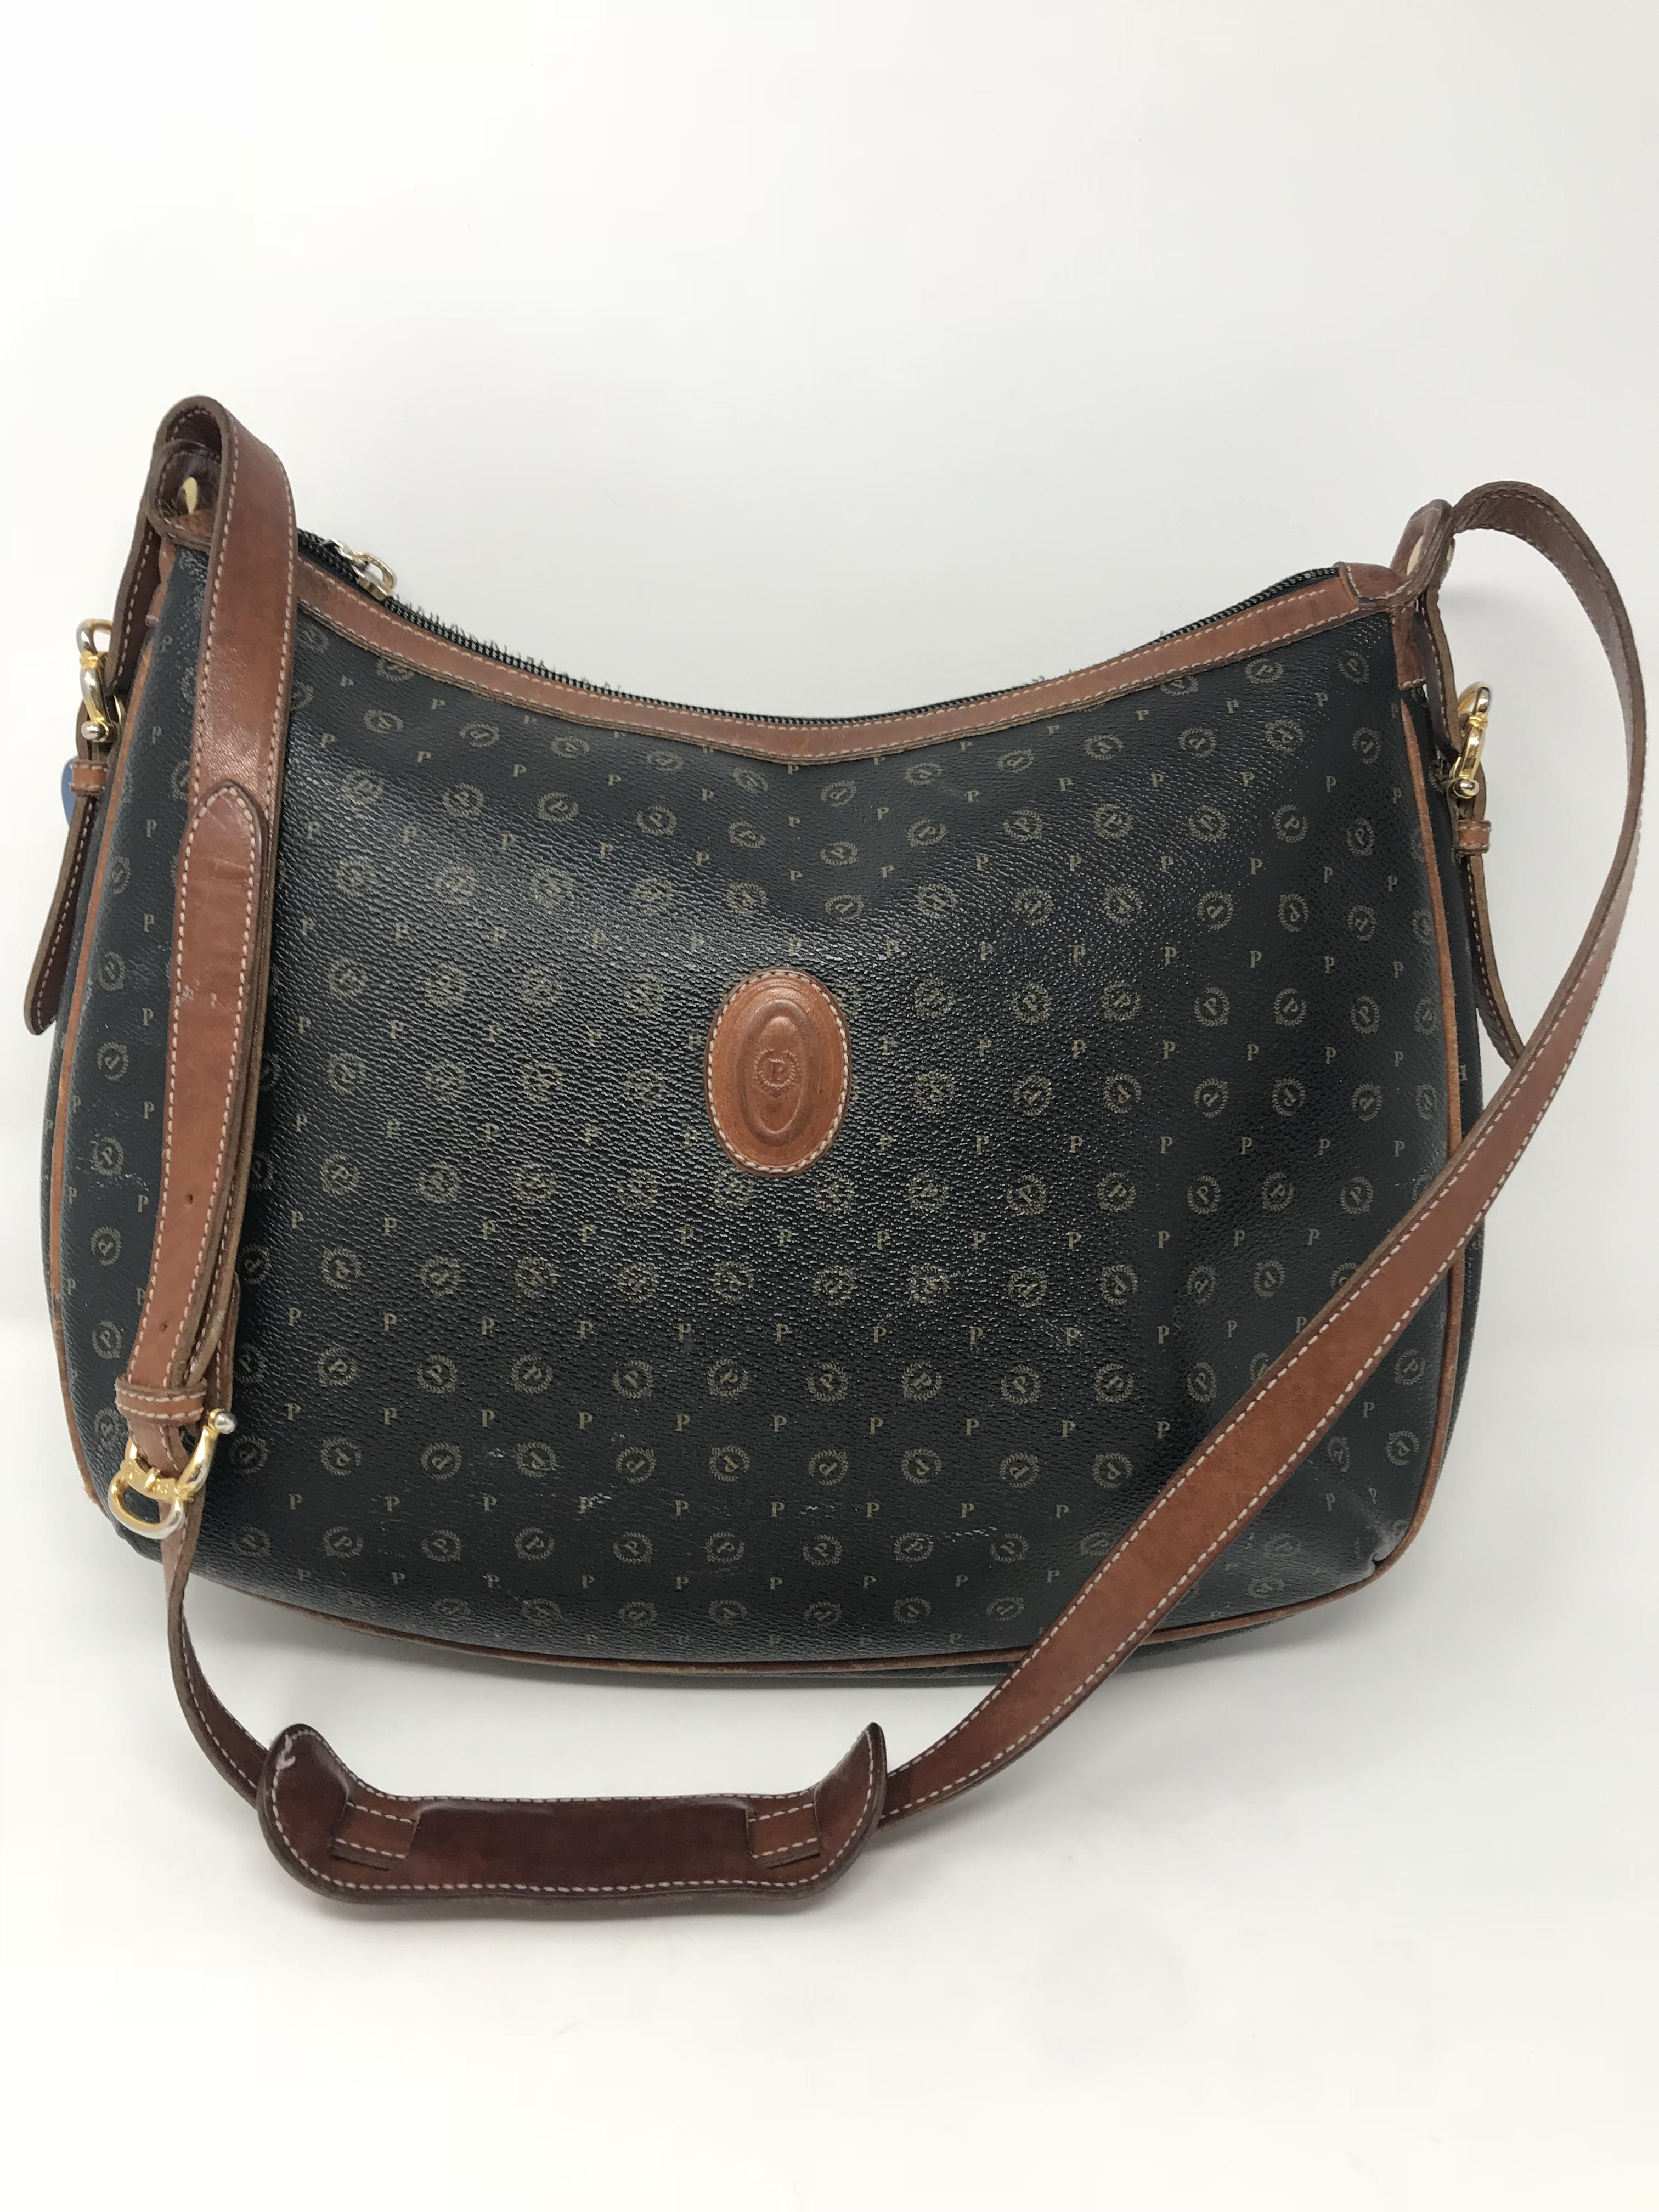 Pollini Purses, Handbags Price: $99.99